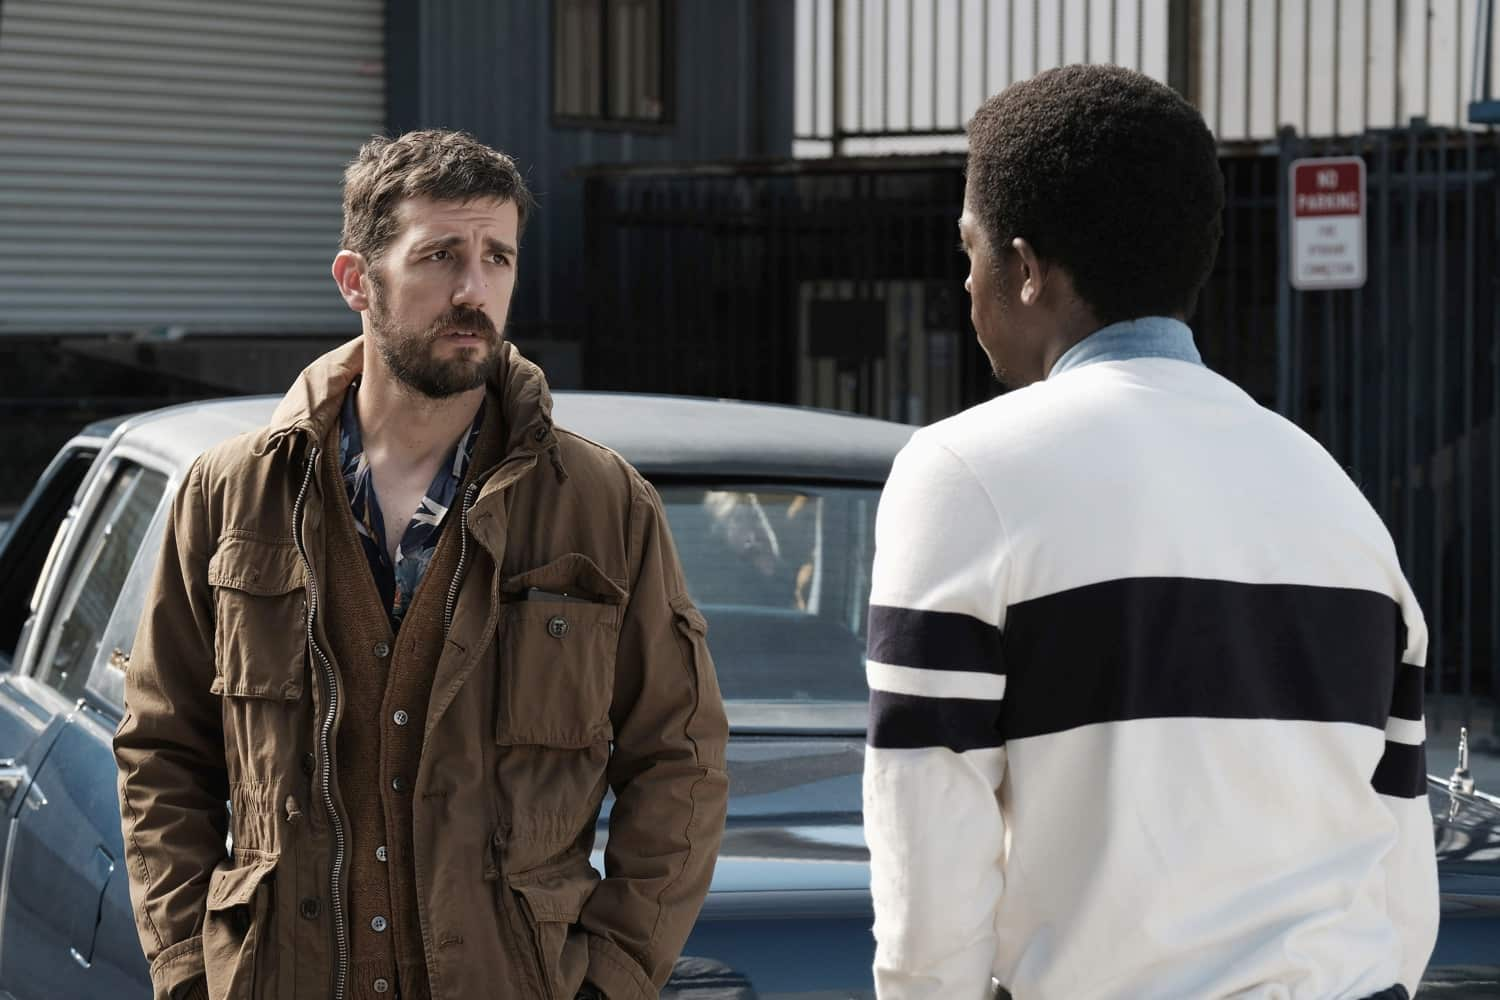 "Snowfall ""The Get Back"" -- Season 4, Episode 5 (Airs Wednesday, March 17) -- Pictured: (l-r) Carter Hudson as Teddy McDonald, Damson Idris as Franklin Saint. CR: Ray Mickshaw/FX"